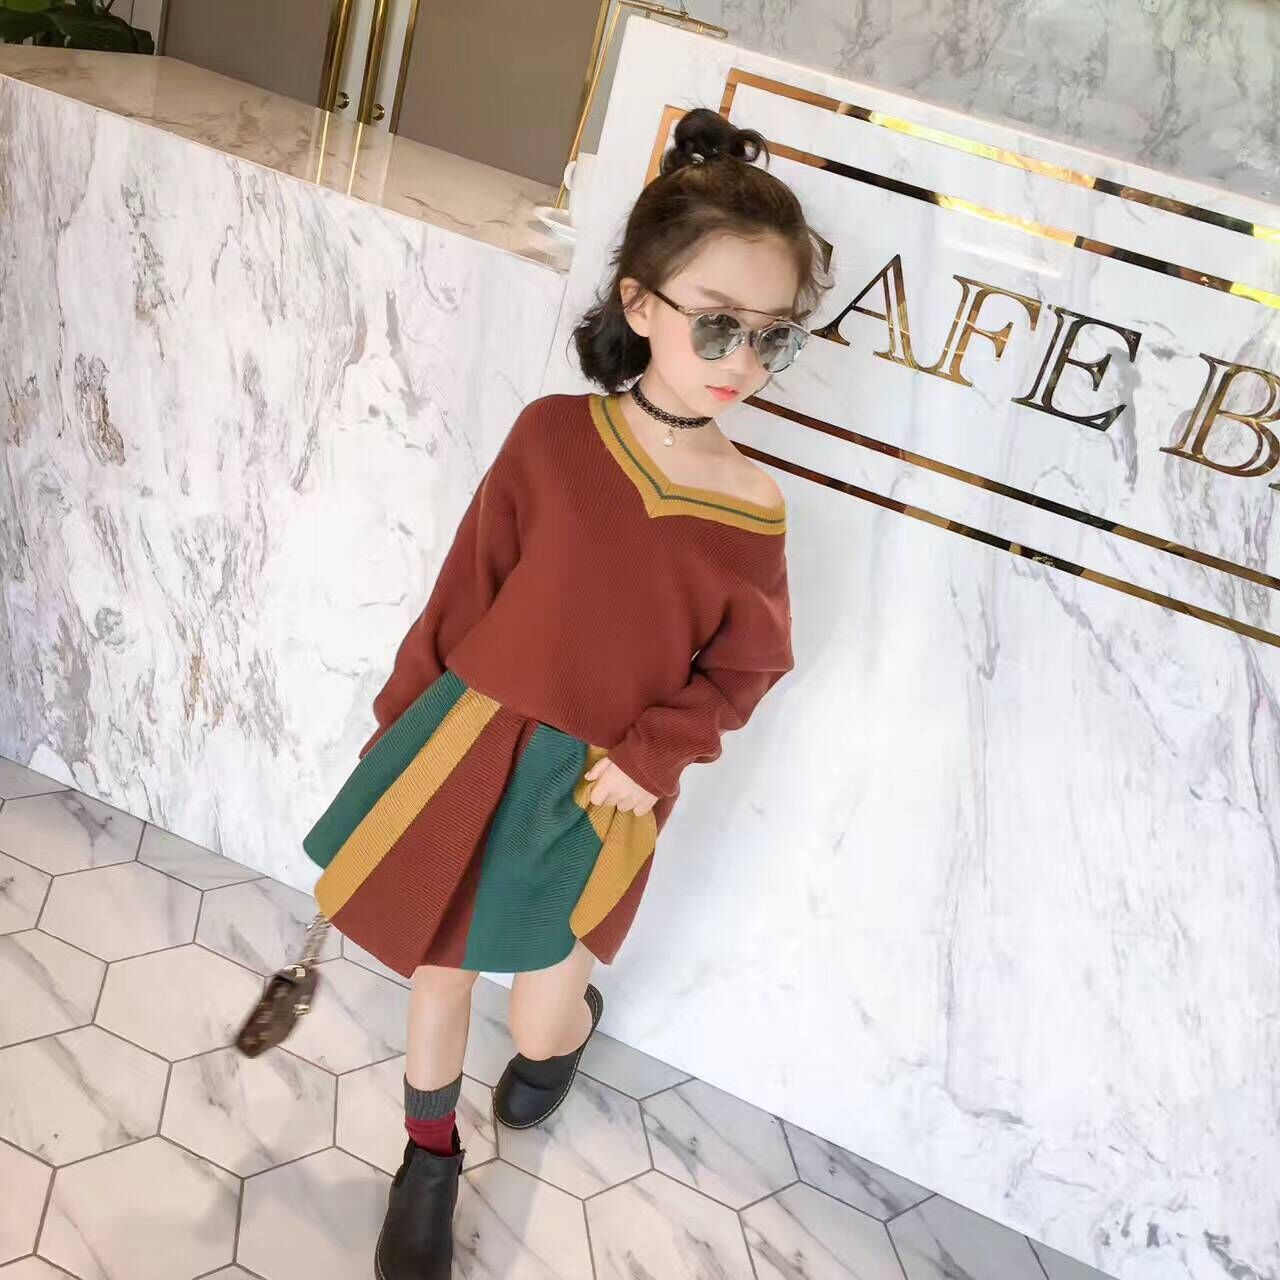 Girl sweater  skirt girl suit 2017 new children's clothes children's princess skirt with knitted blouse two sets